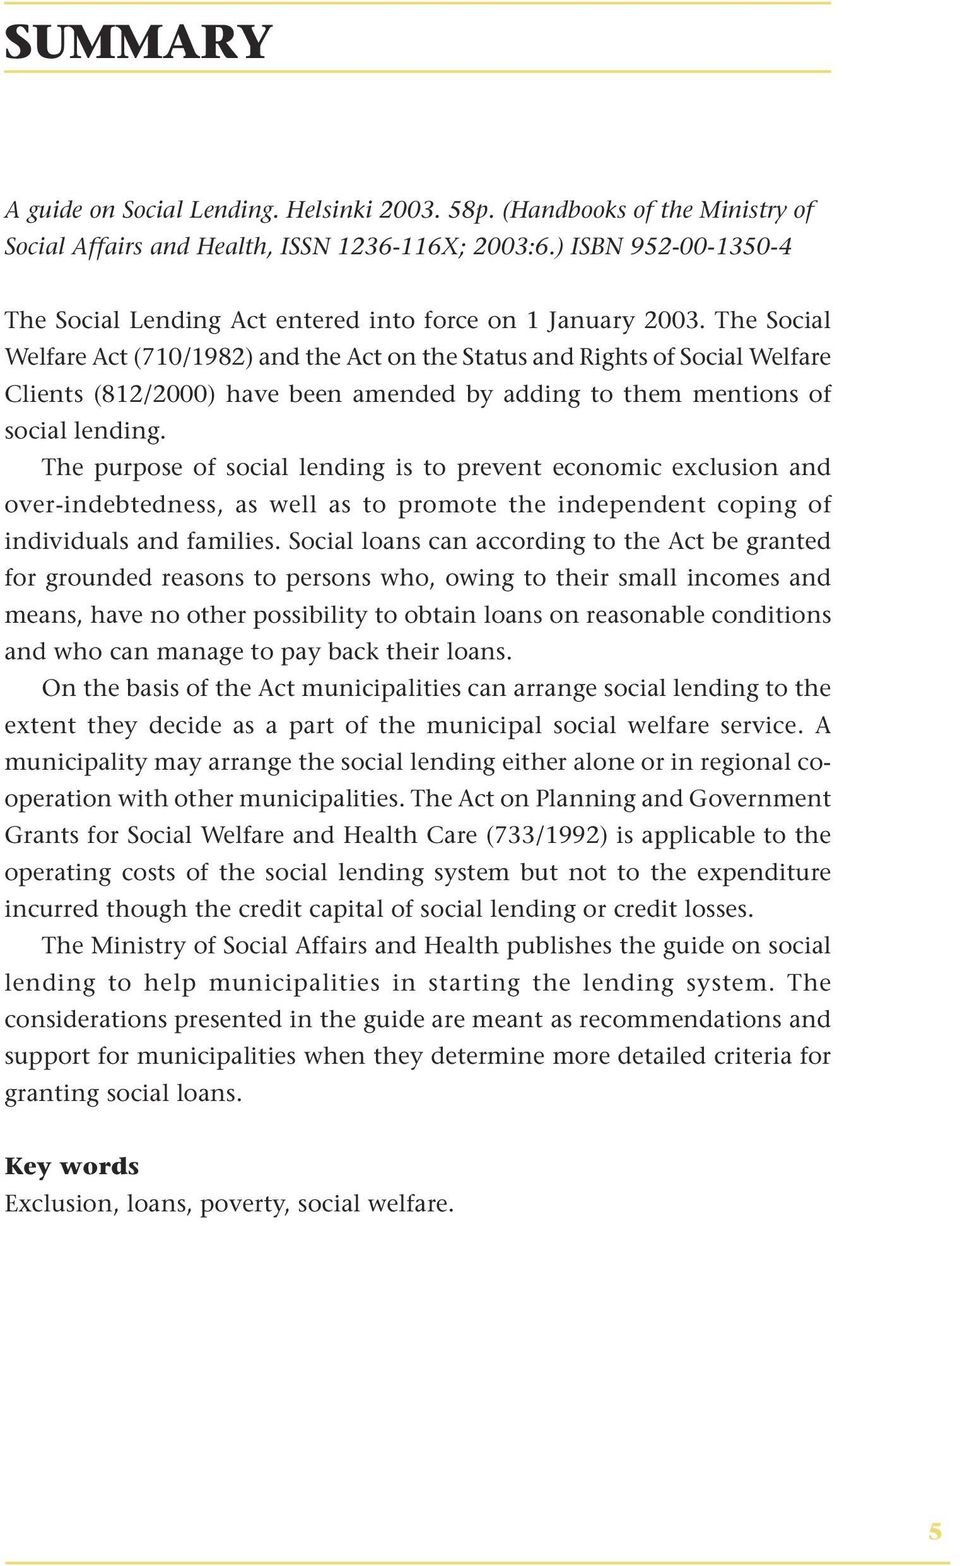 The Social Welfare Act (710/1982) and the Act on the Status and Rights of Social Welfare Clients (812/2000) have been amended by adding to them mentions of social lending.